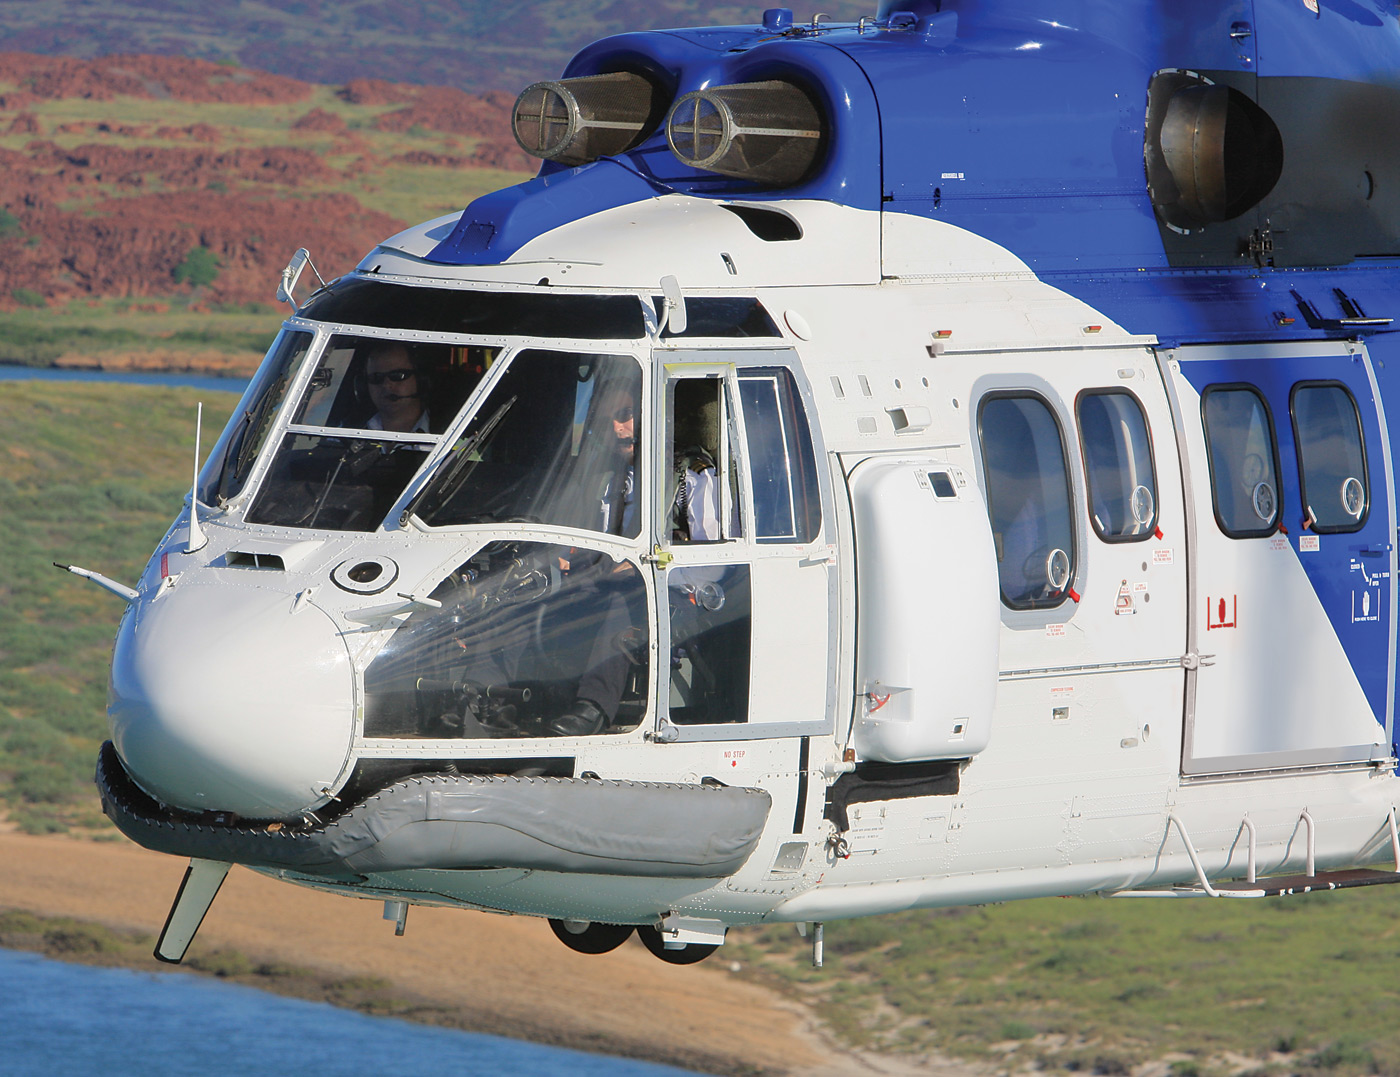 Universal Avionics' contract to retrofit Airbus AS332L/L1 helicopters is the latest example of the company's growing presence in the rotorcraft market.